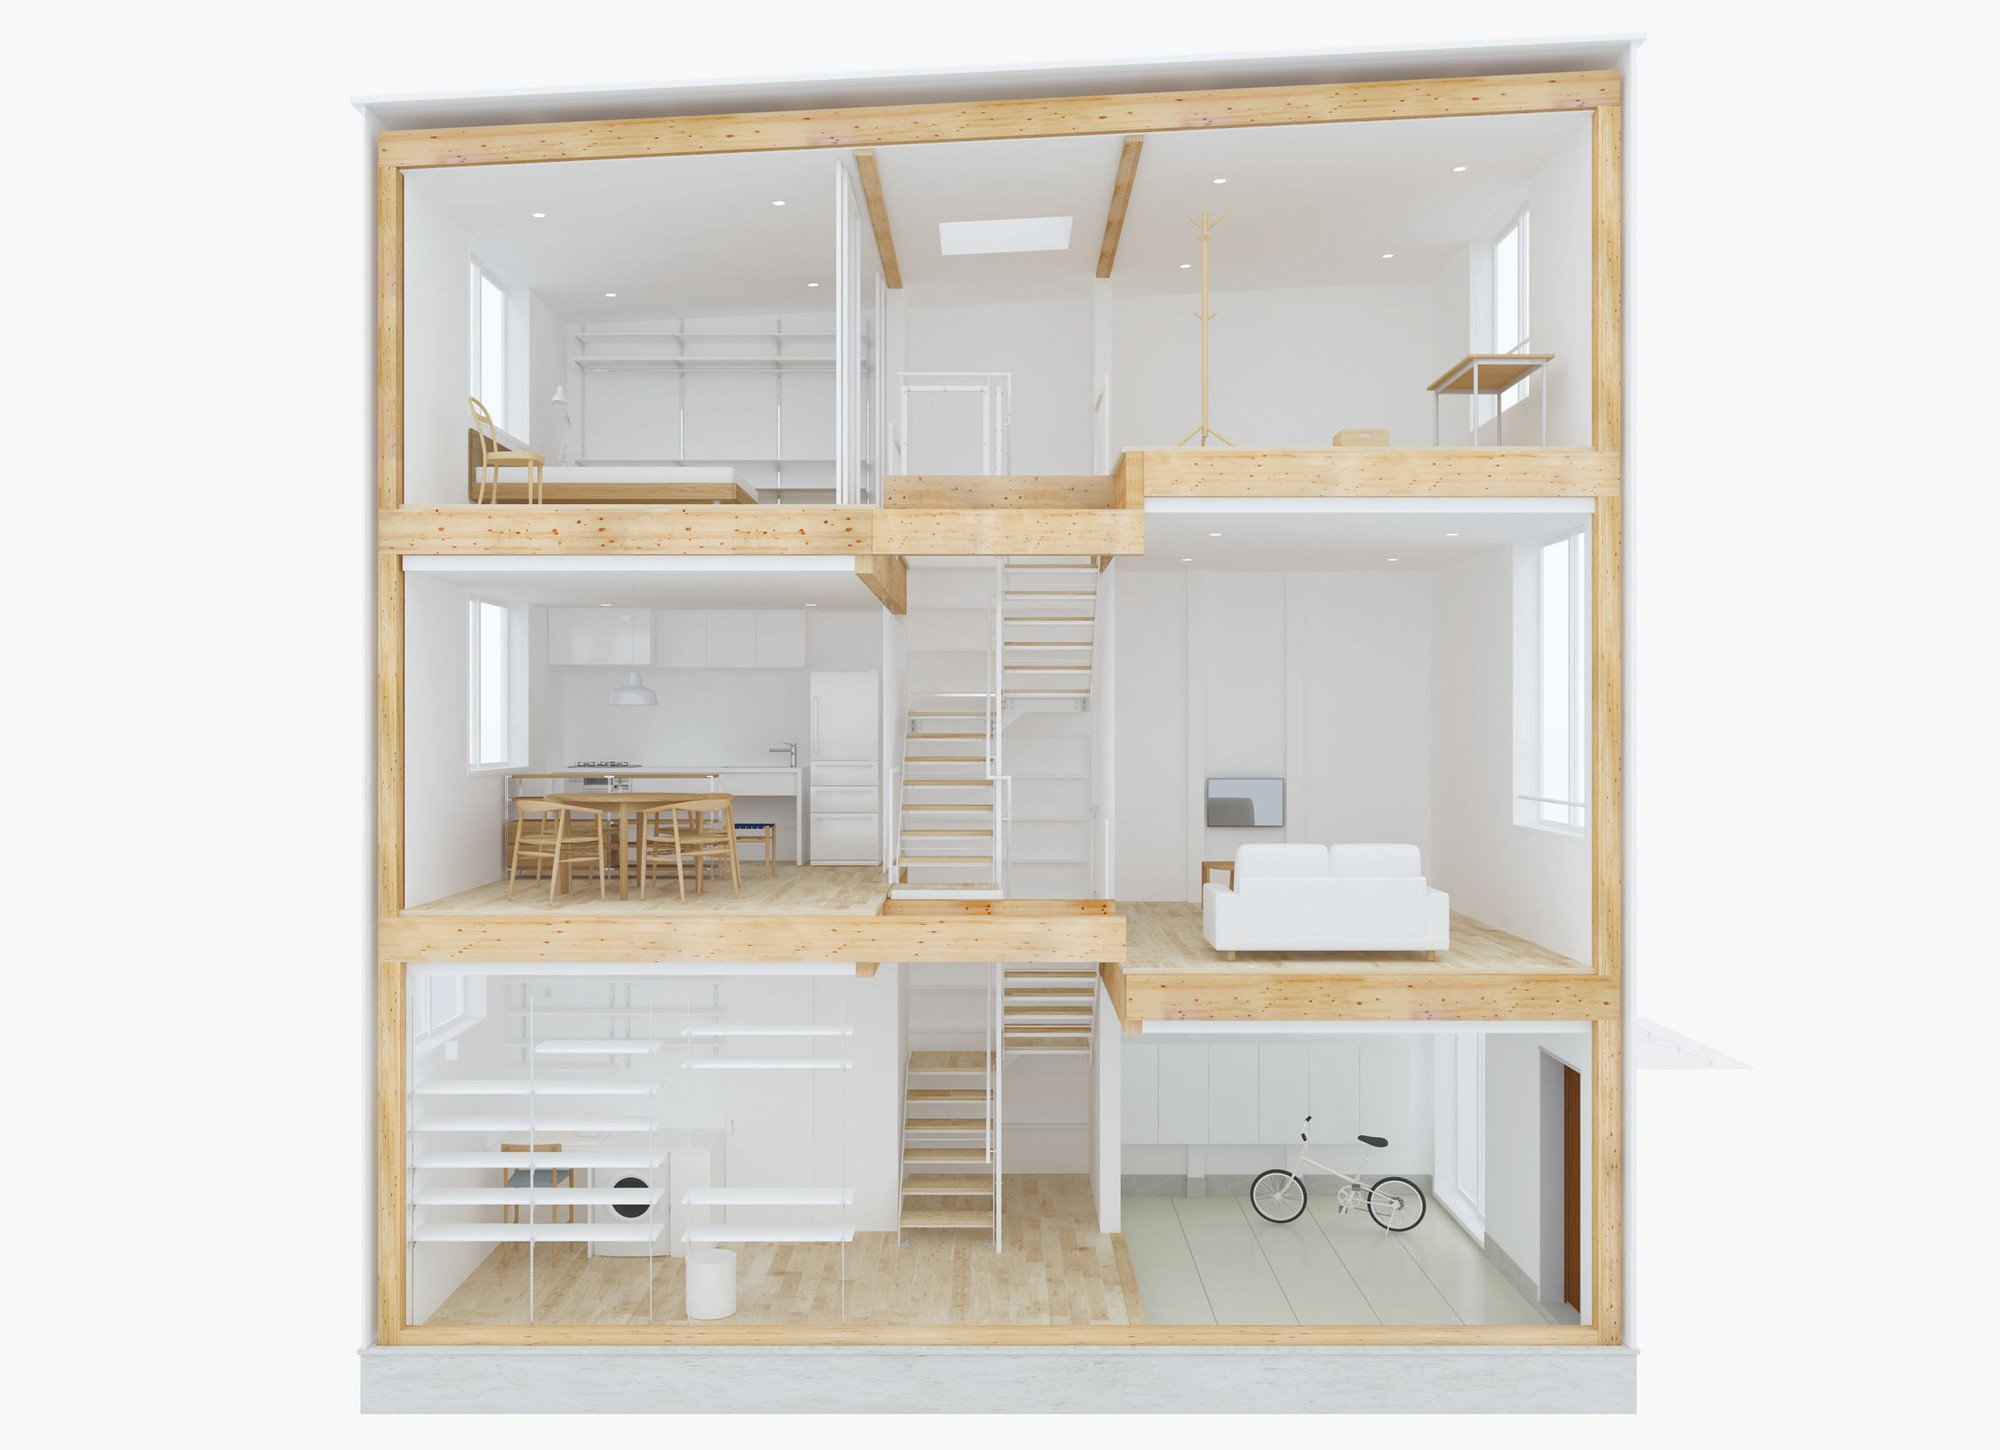 Gallery of design your own home with muji 39 s prefab for Customize your home